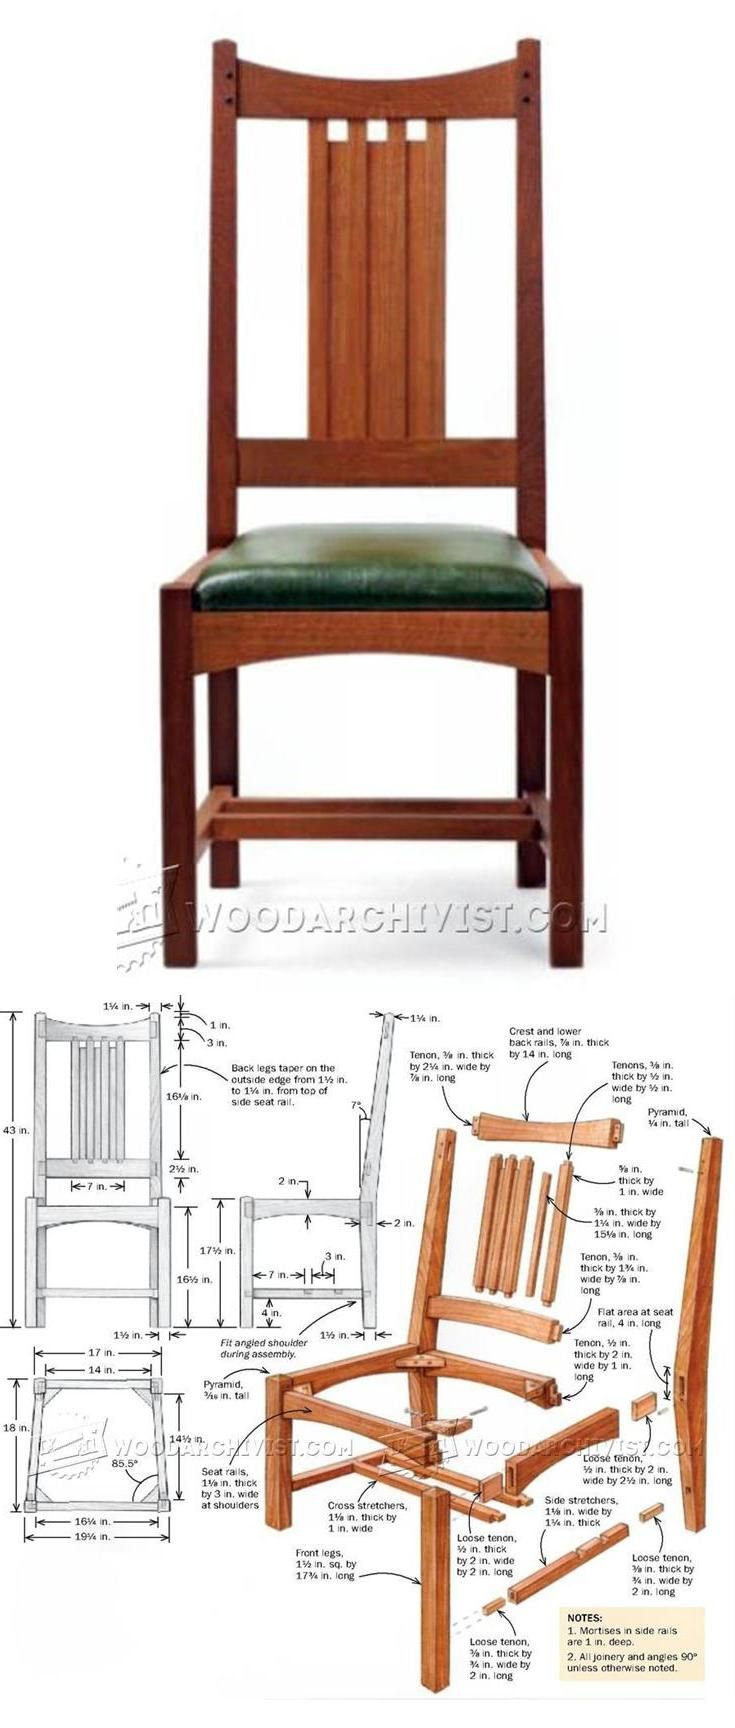 Mission style furniture plans - Find This Pin And More On Mission Style Furniture